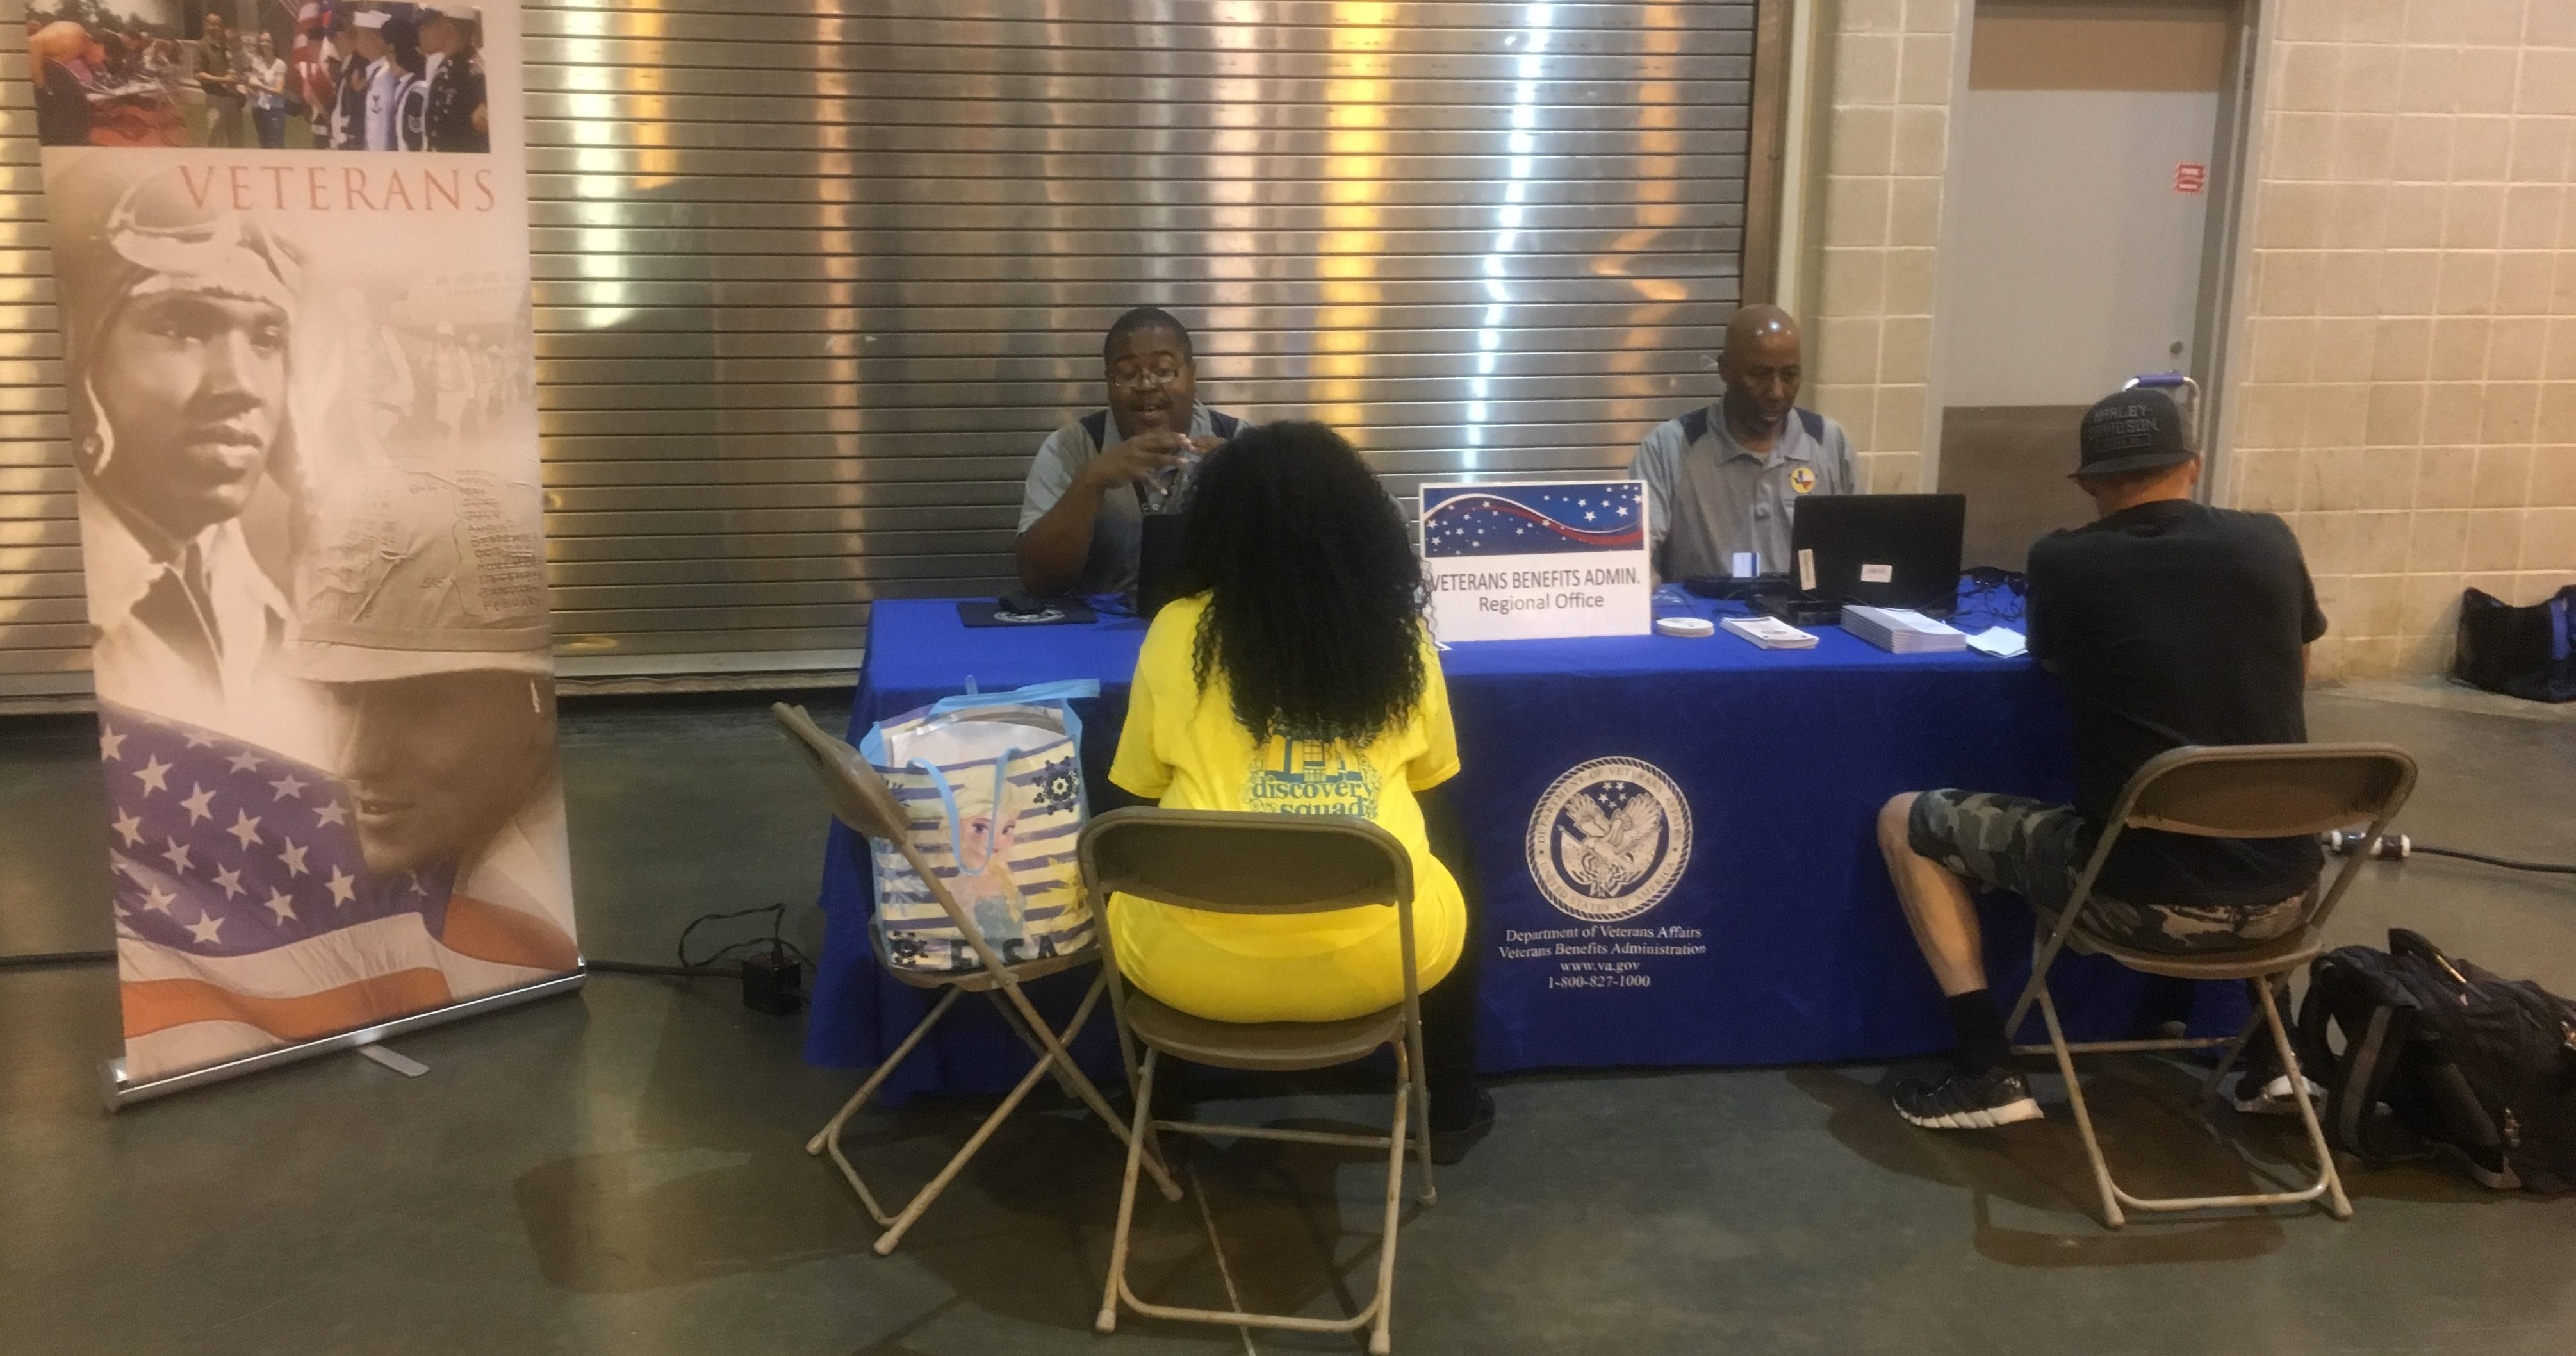 Houston team connects with Veterans to deliver VA benefits despite